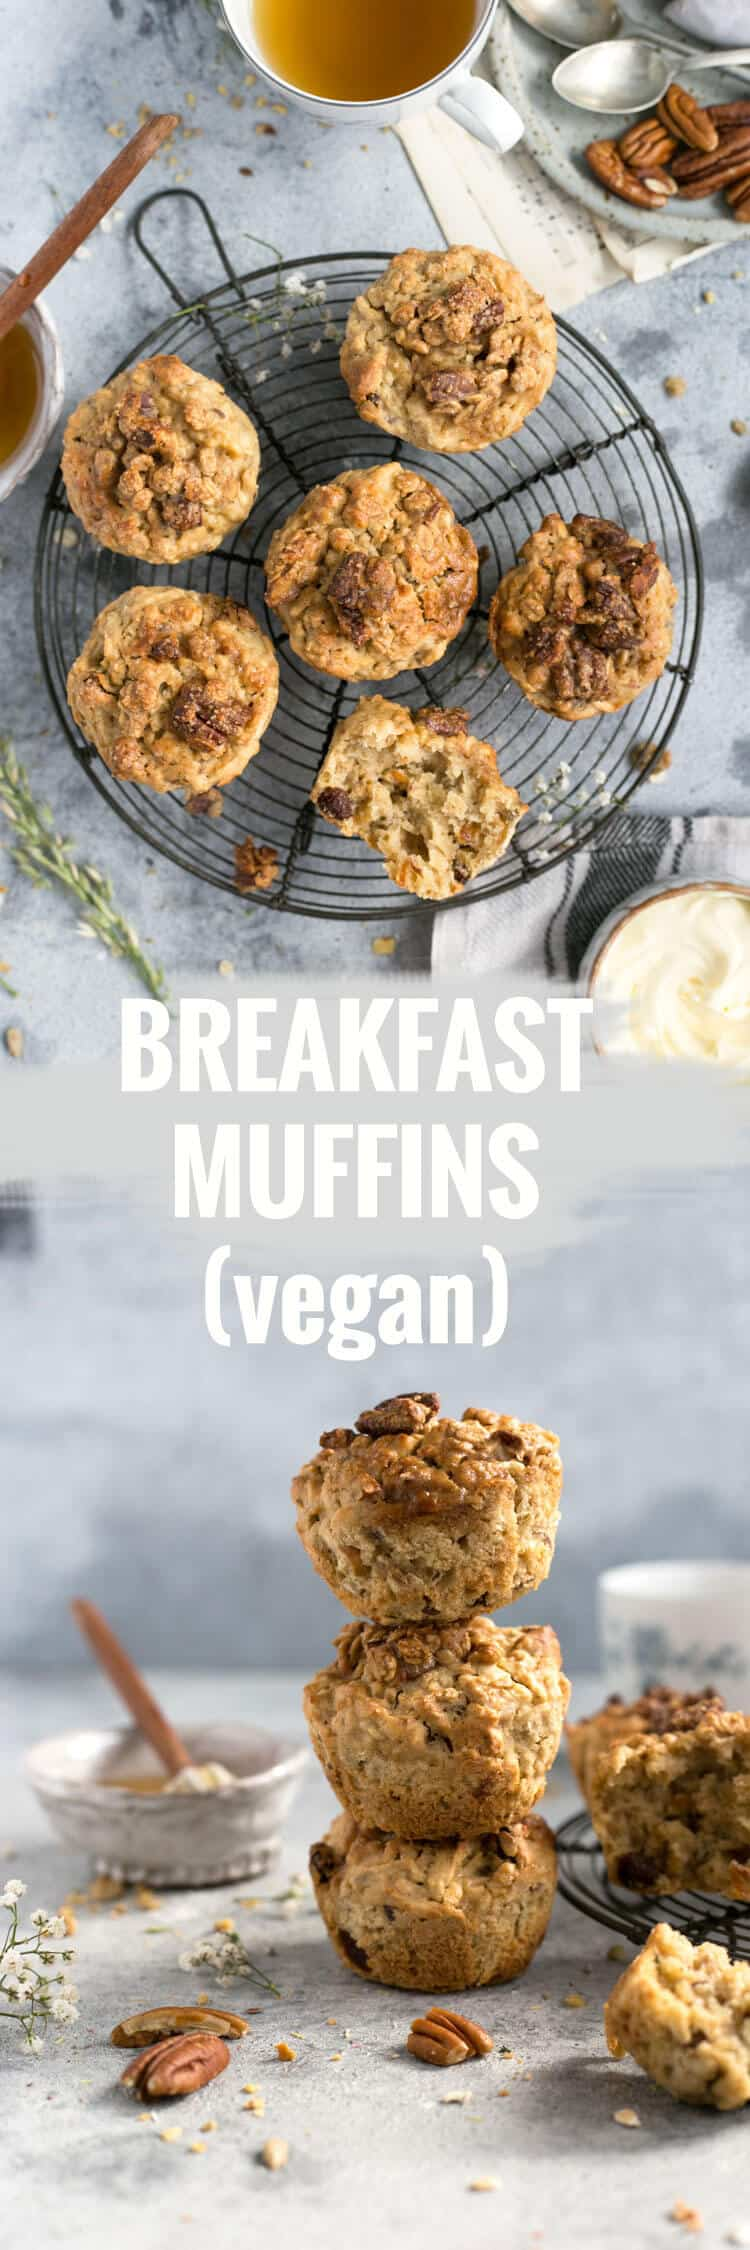 Easy and delicious breakfast muffins with crunchy pecan topping | via @annabanana.co